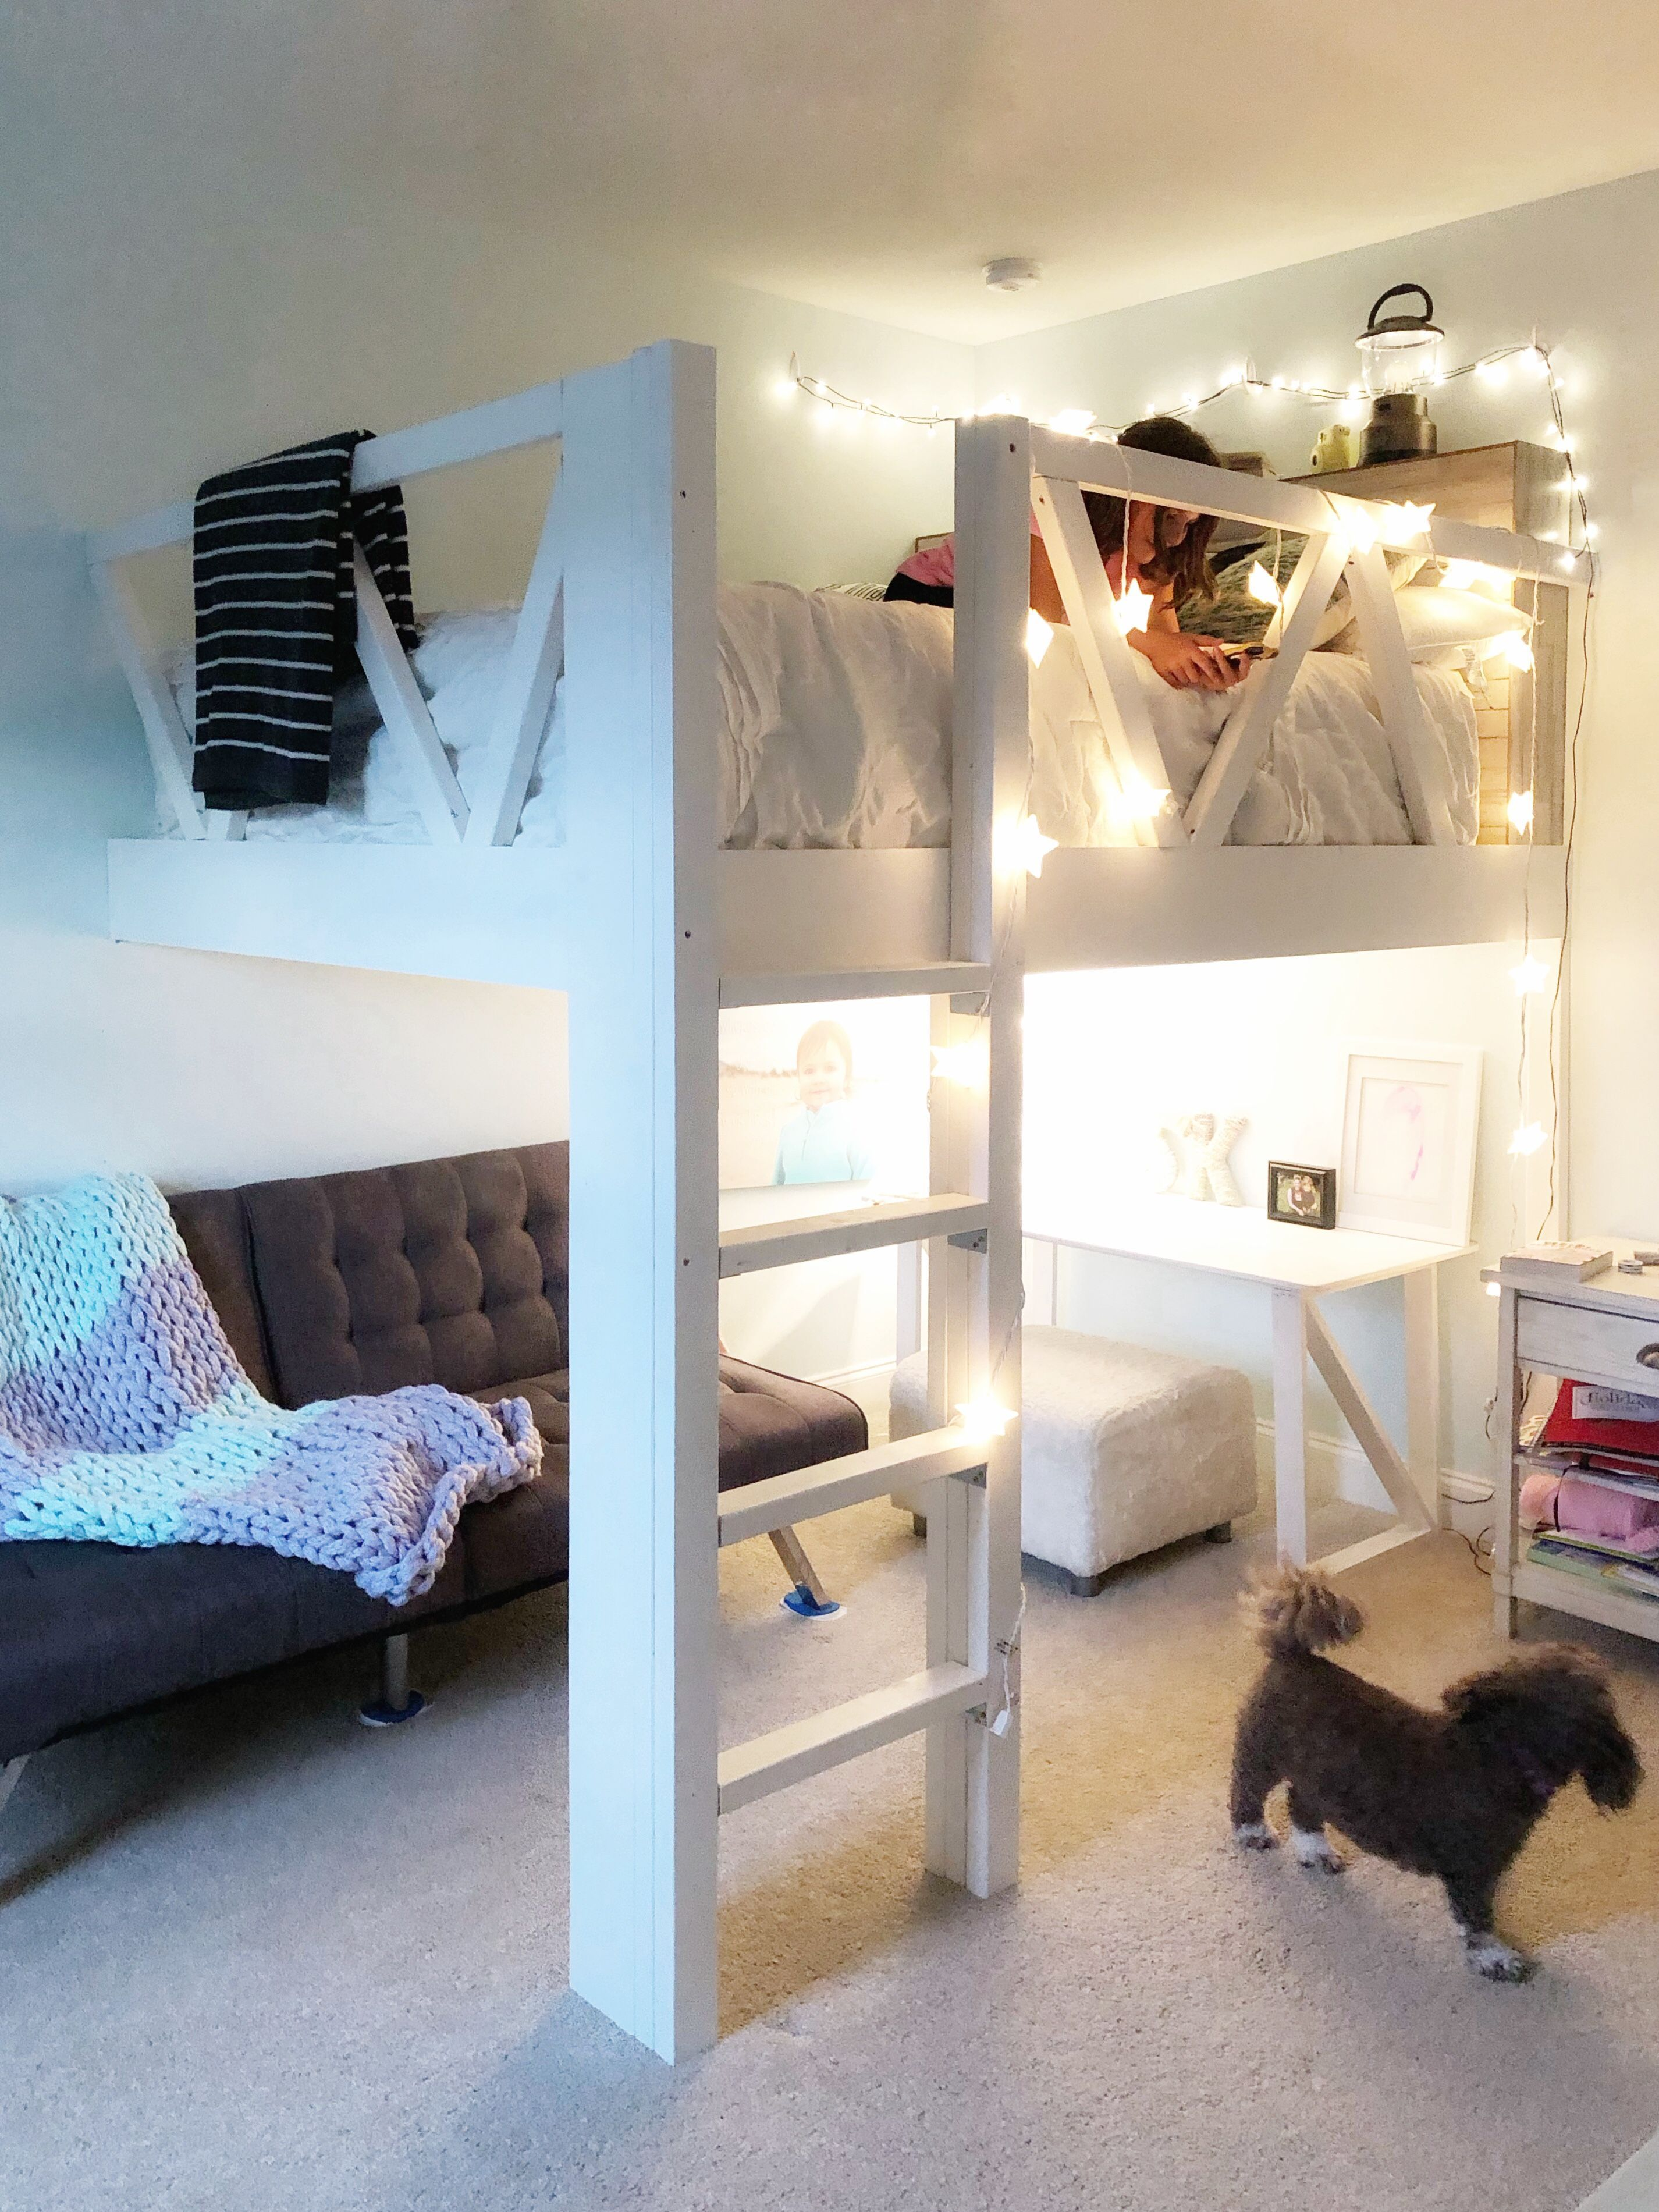 Diy Loft Bed Queen Size Under 225 Diy Loft Bed Queen Size Under 225 Fashion By Mayhem Fashionbymayhem F Loft Bed Plans Diy Loft Bed Girls Loft Bed Loft beds for small spaces